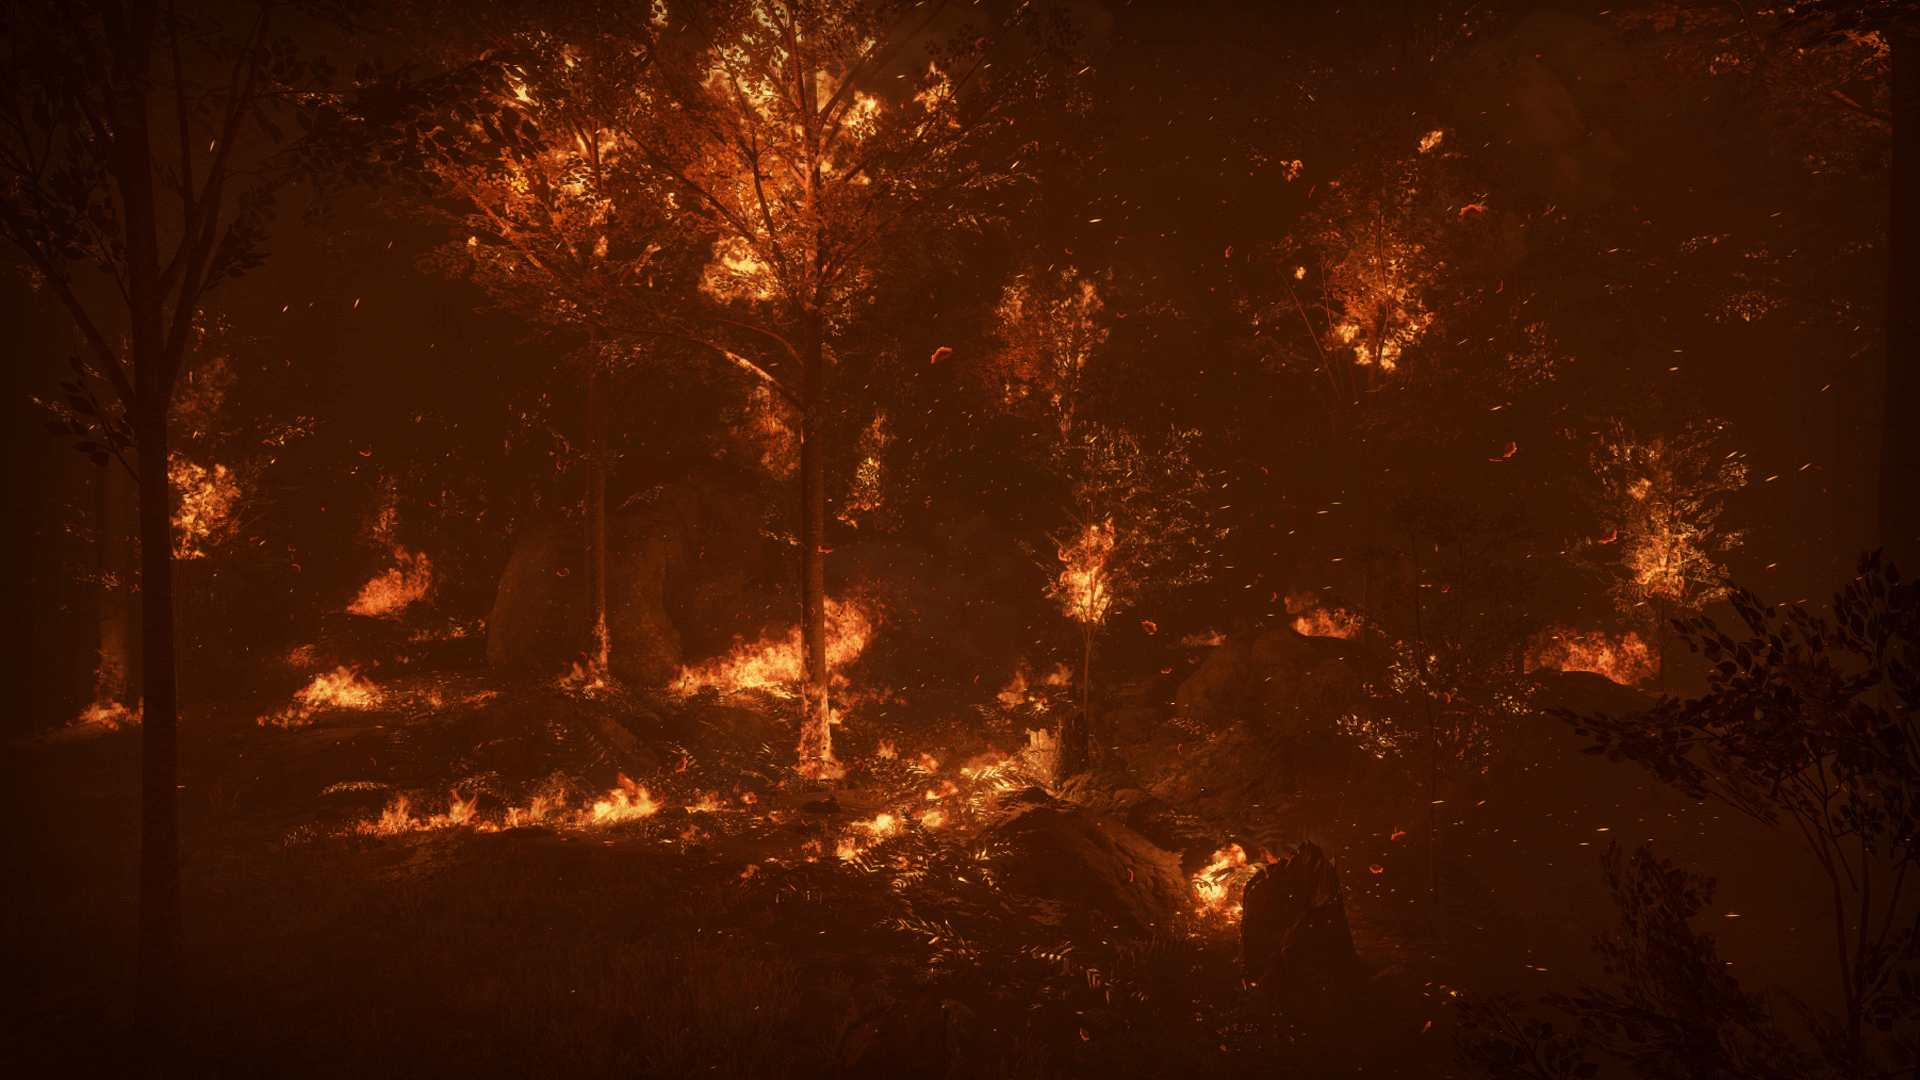 Forest Fire by Alexander Dracott in FX - UE4 Marketplace